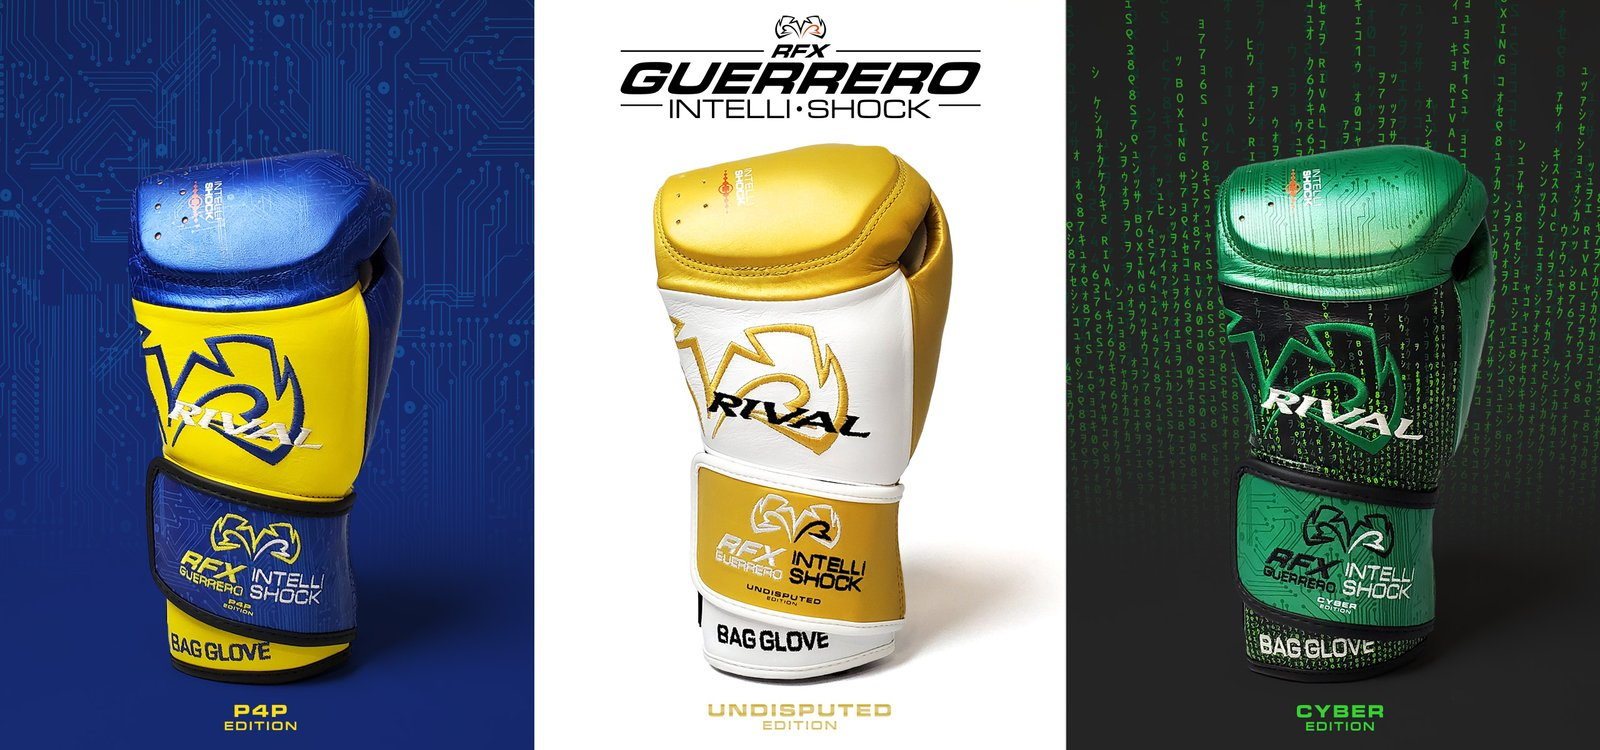 Rival RFX-Guerrero Intelli-Shock Special Editions